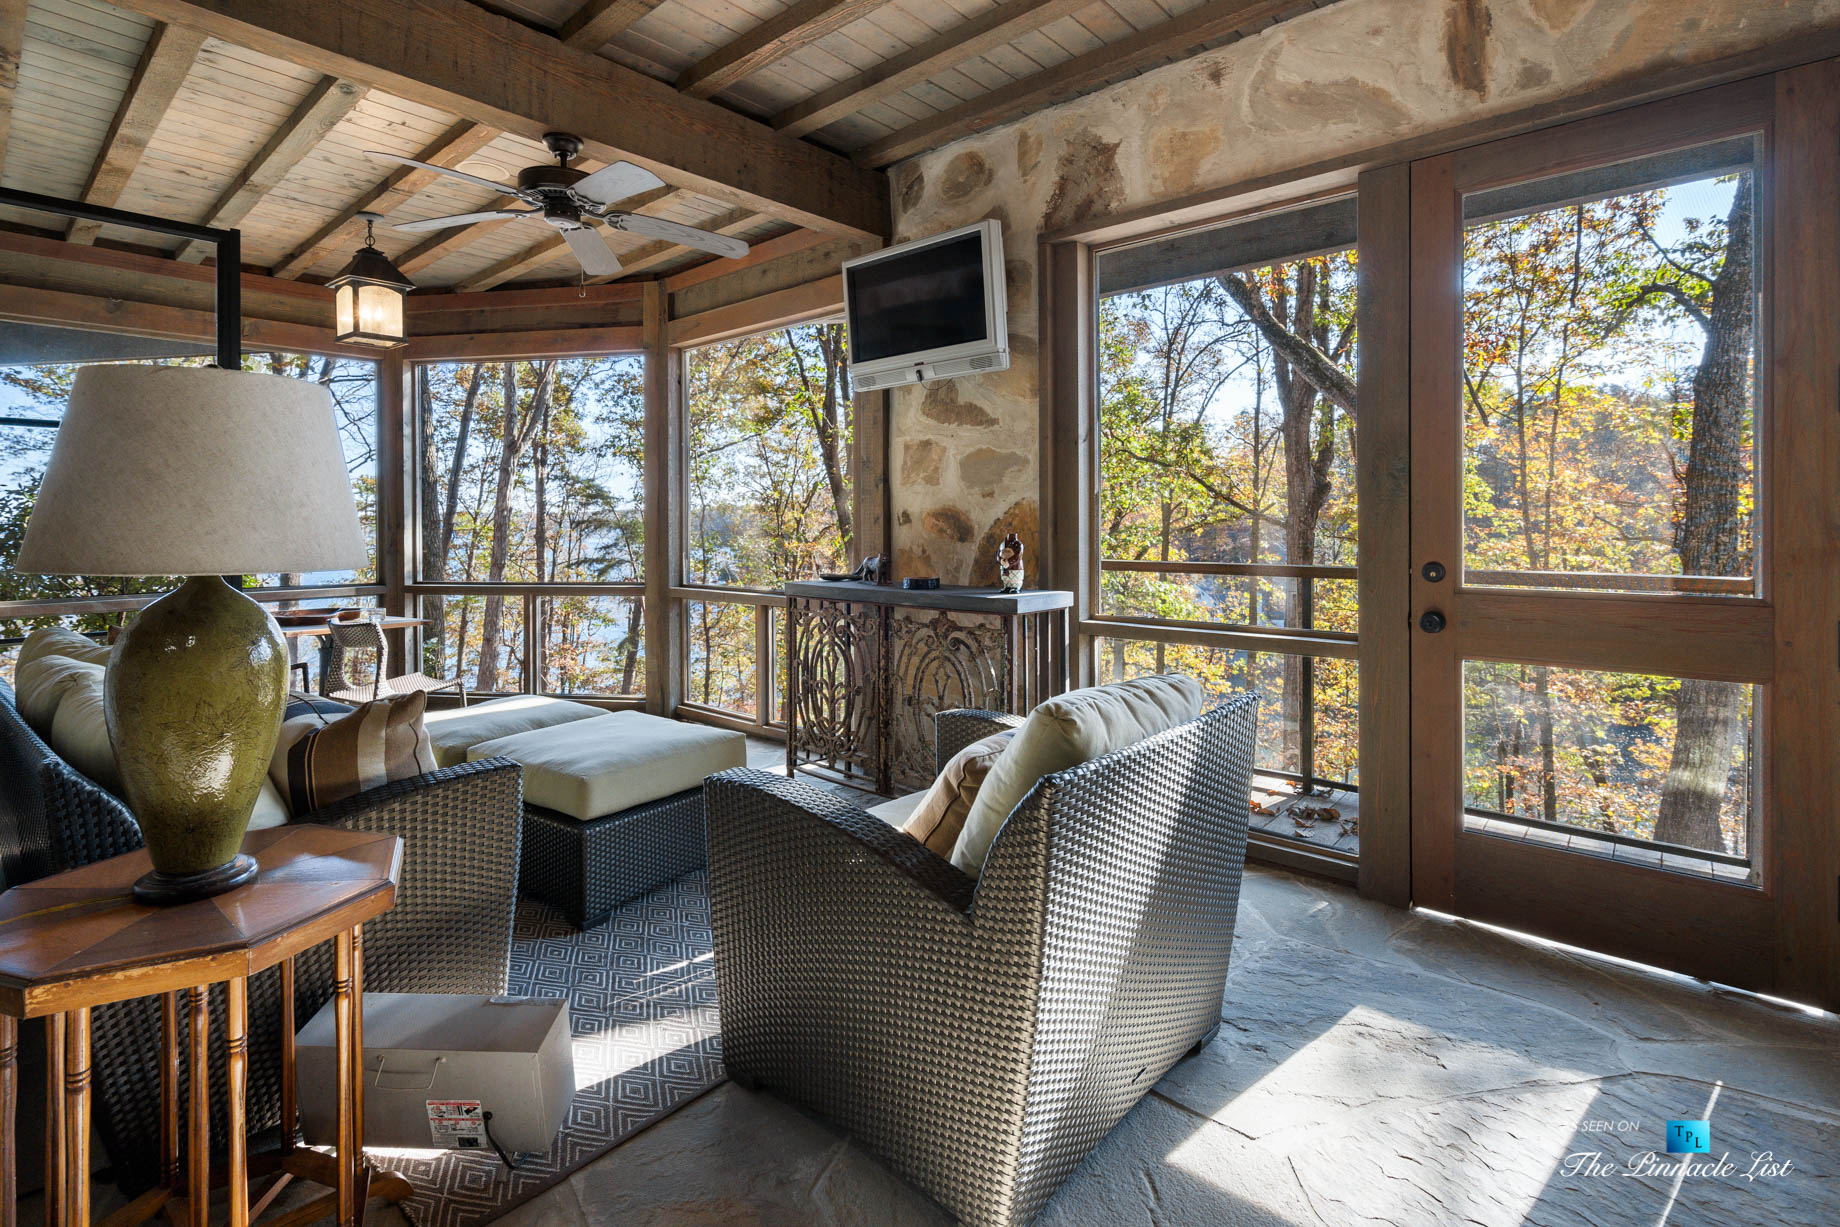 7860 Chestnut Hill Rd, Cumming, GA, USA – Covered Outdoor Deck – Luxury Real Estate – Lake Lanier Mid-Century Modern Stone Home